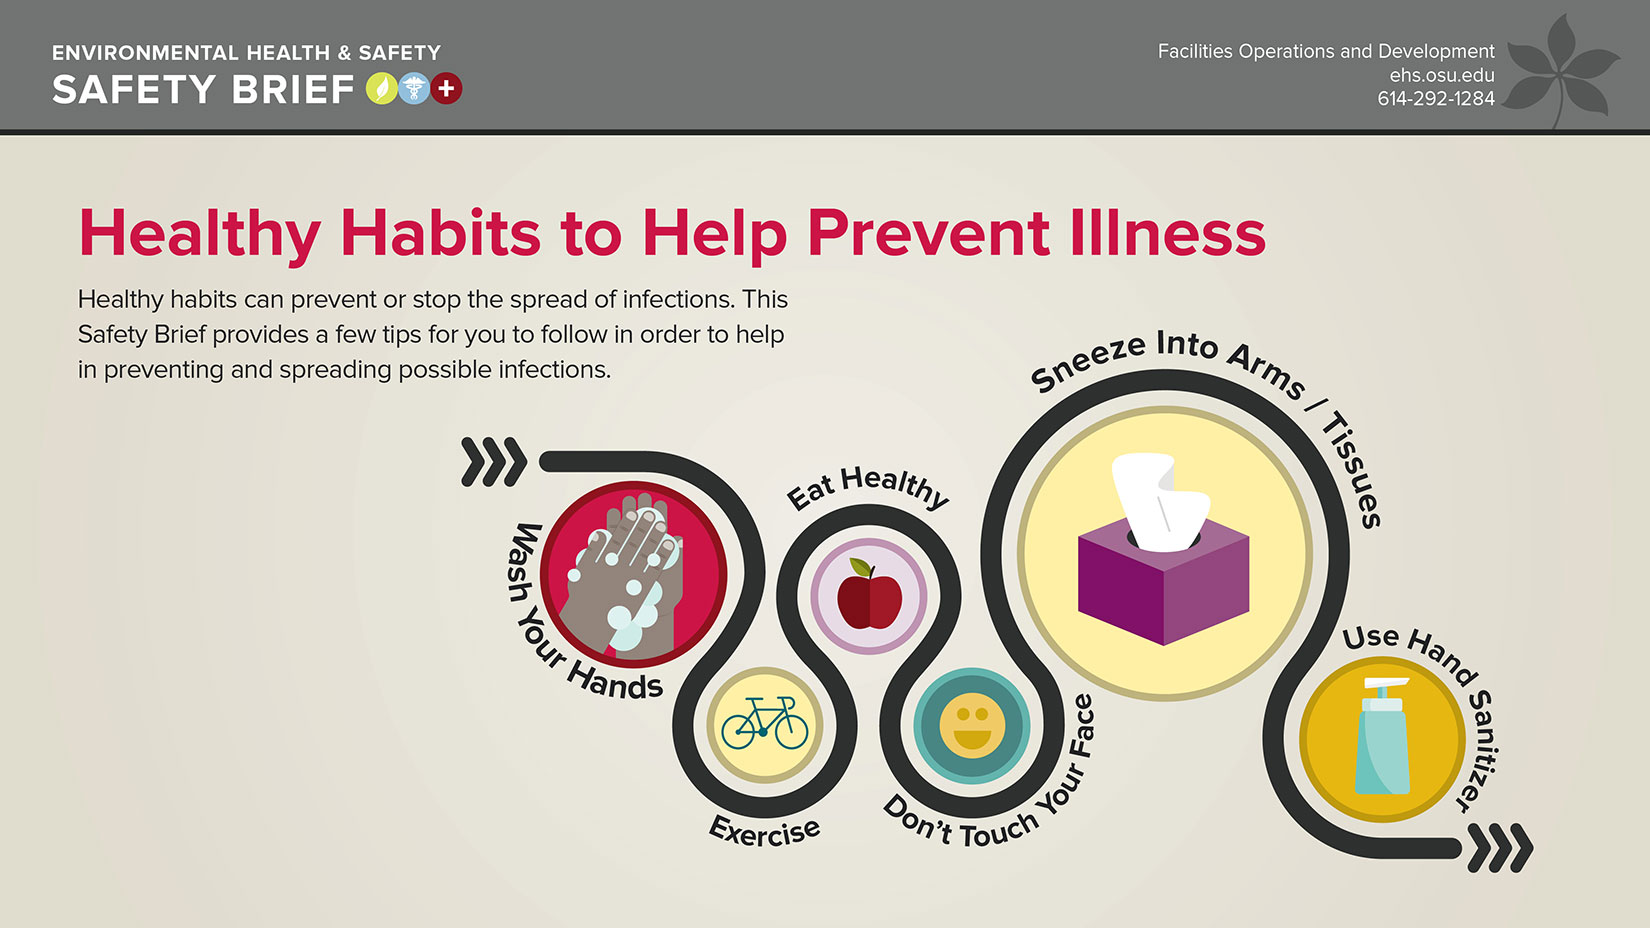 Healthy Habits to Help Prevent Illness